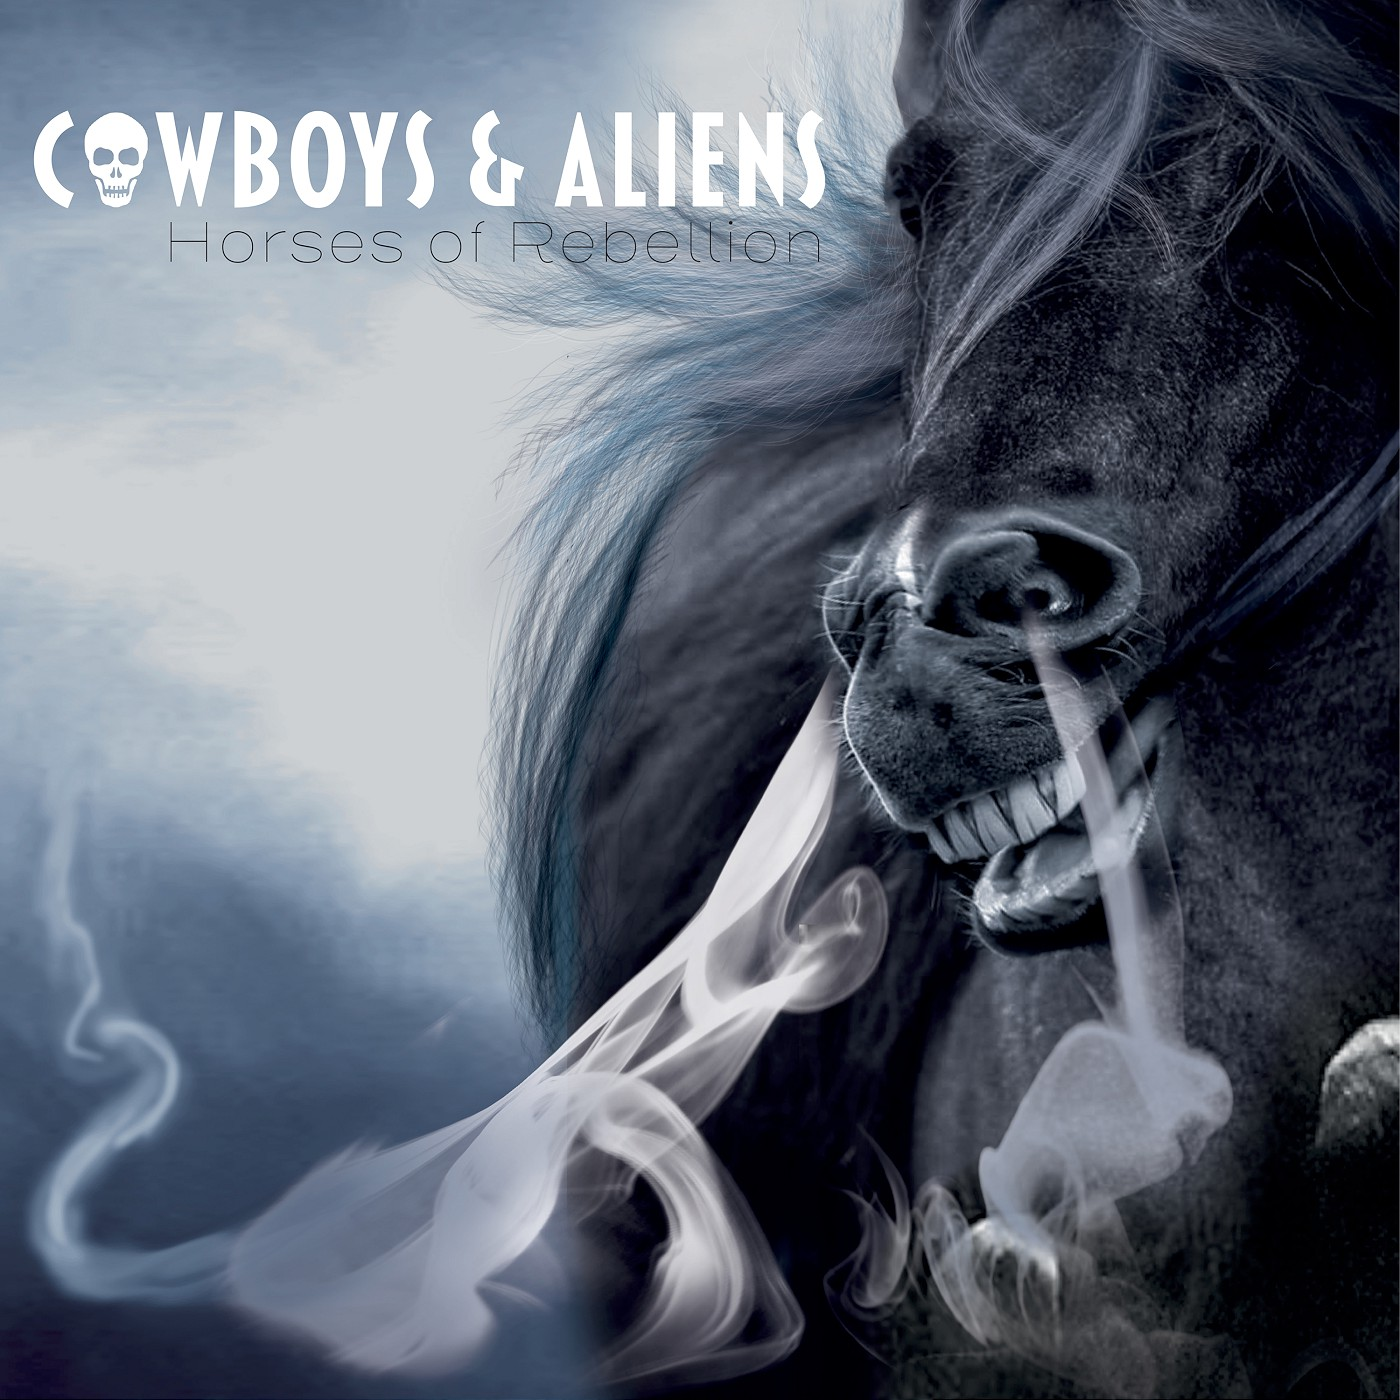 cowboys aliens horses of rebellion